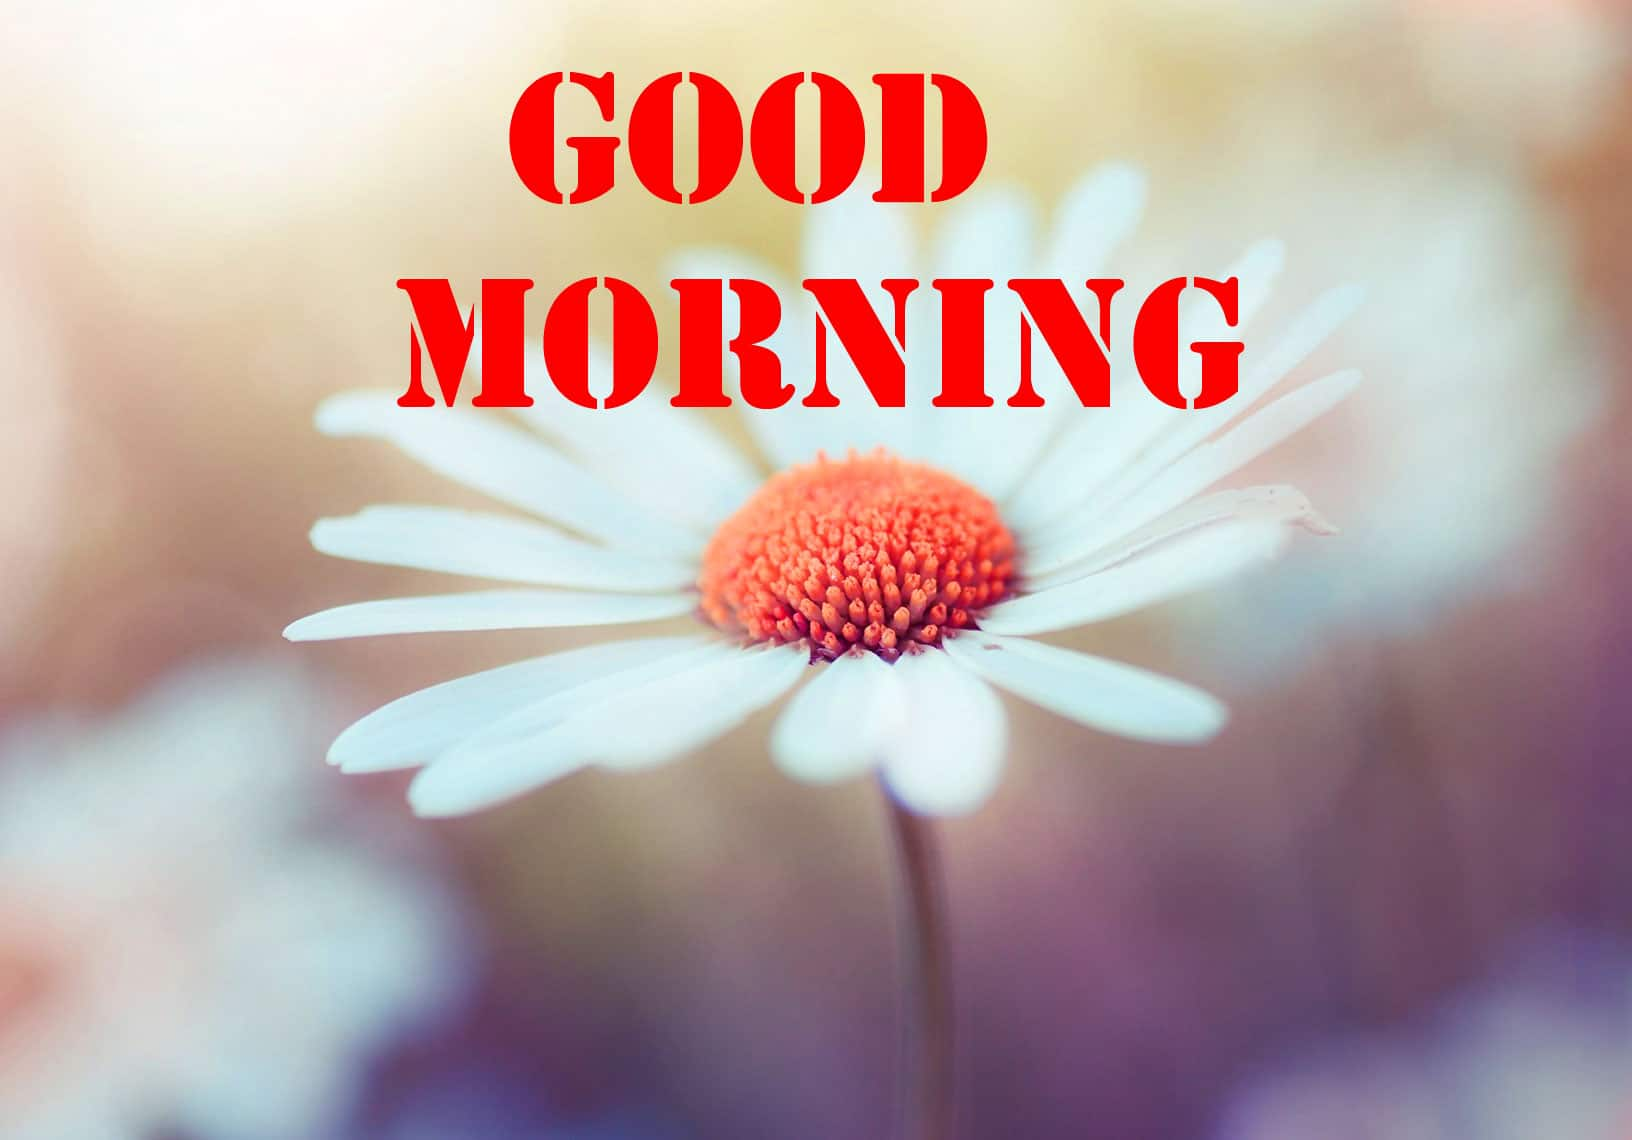 Good Morning Wishes Pics New Download